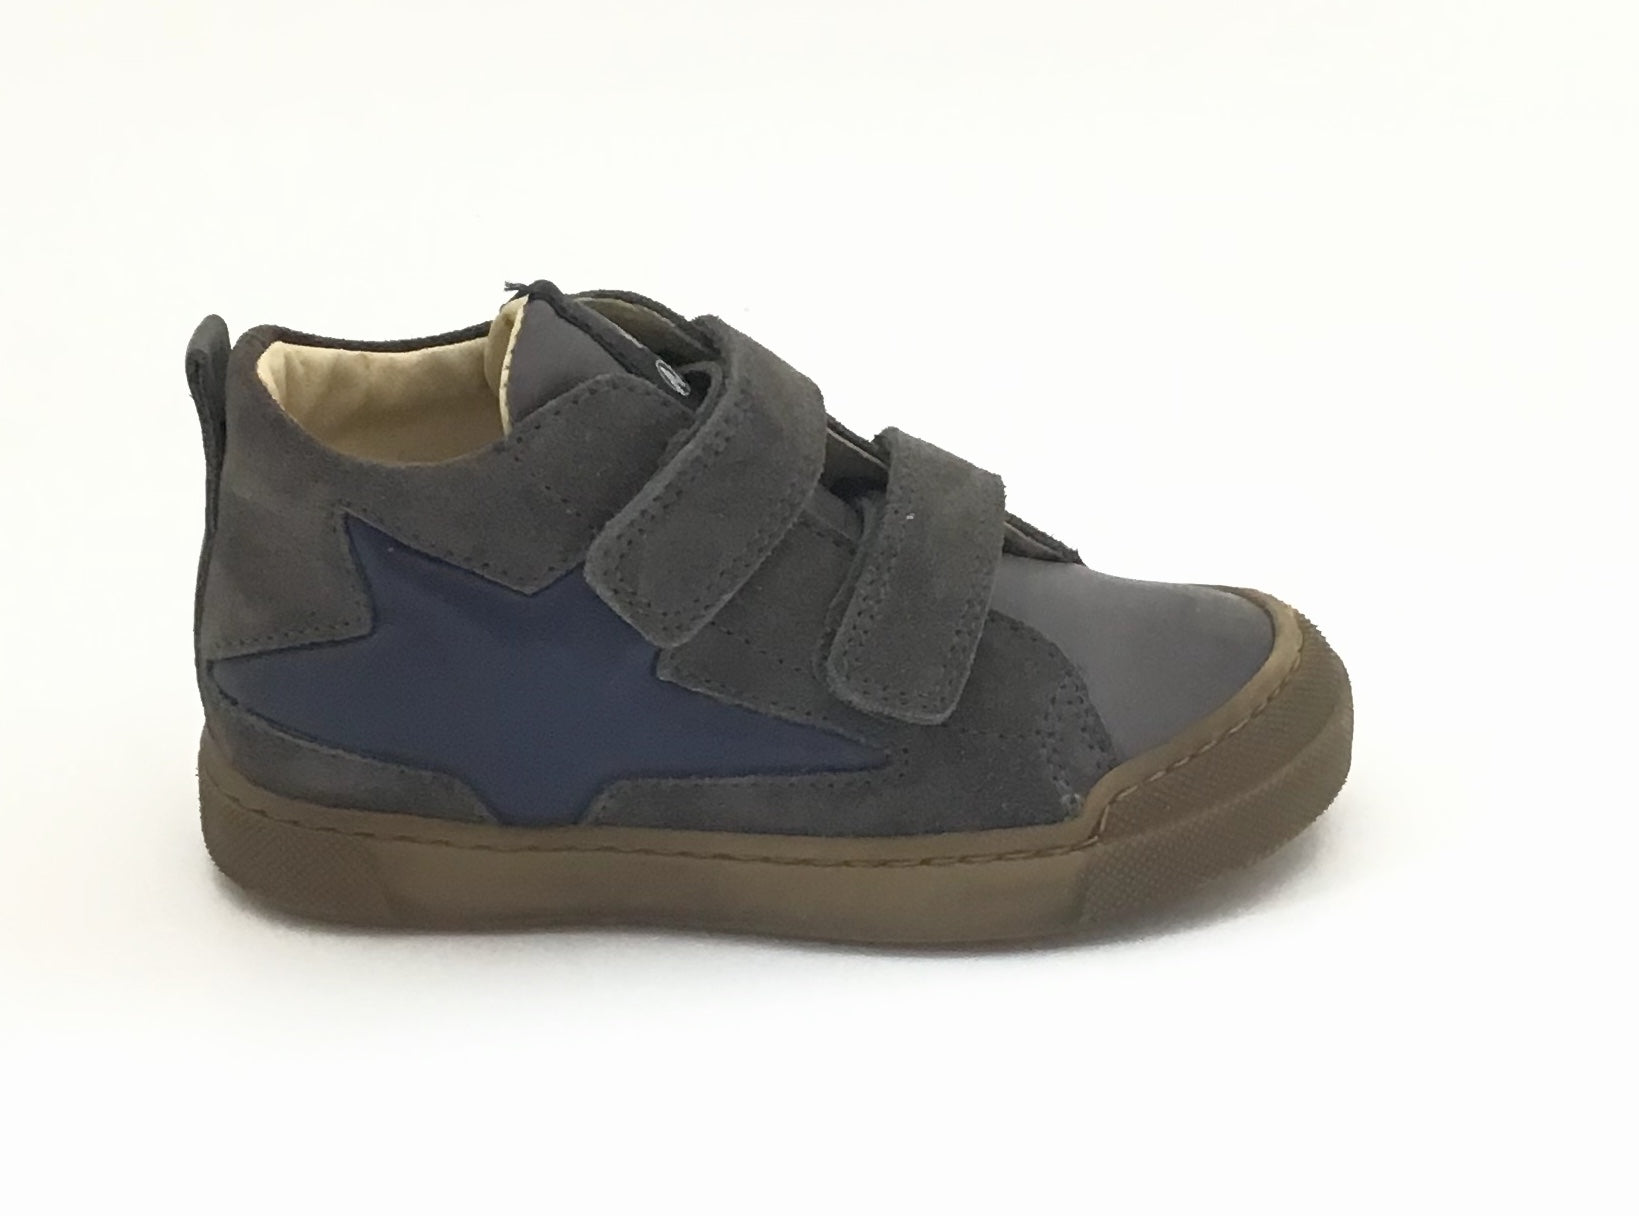 Naturino Charcoal Velour Sneaker with Navy Star and Double Velcro